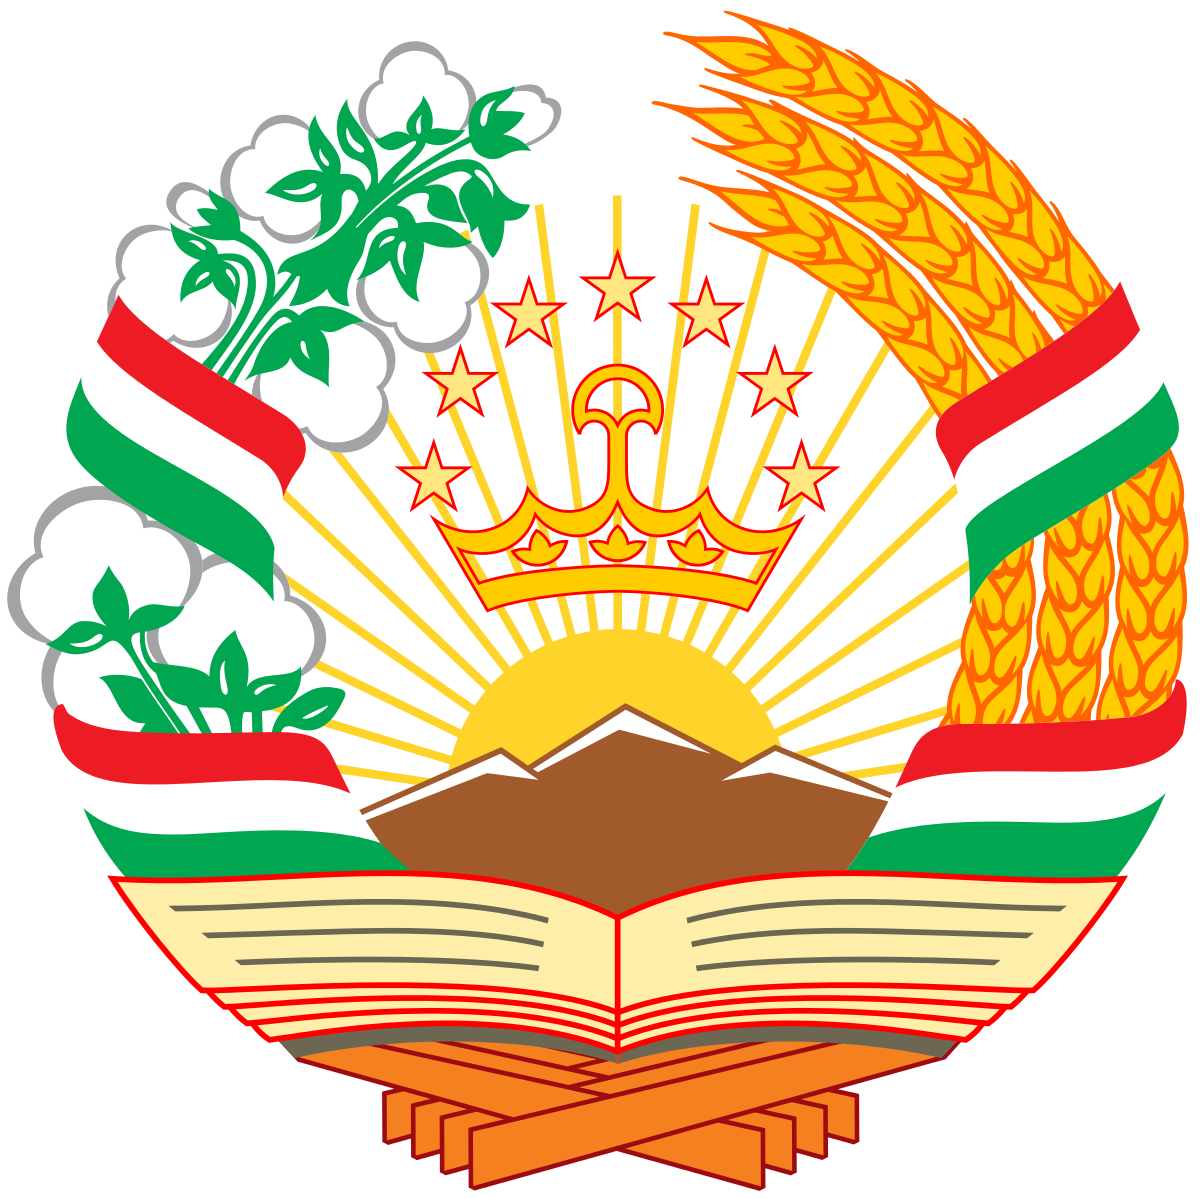 Relations of tajikistan wikipedia. Language clipart foreign trade